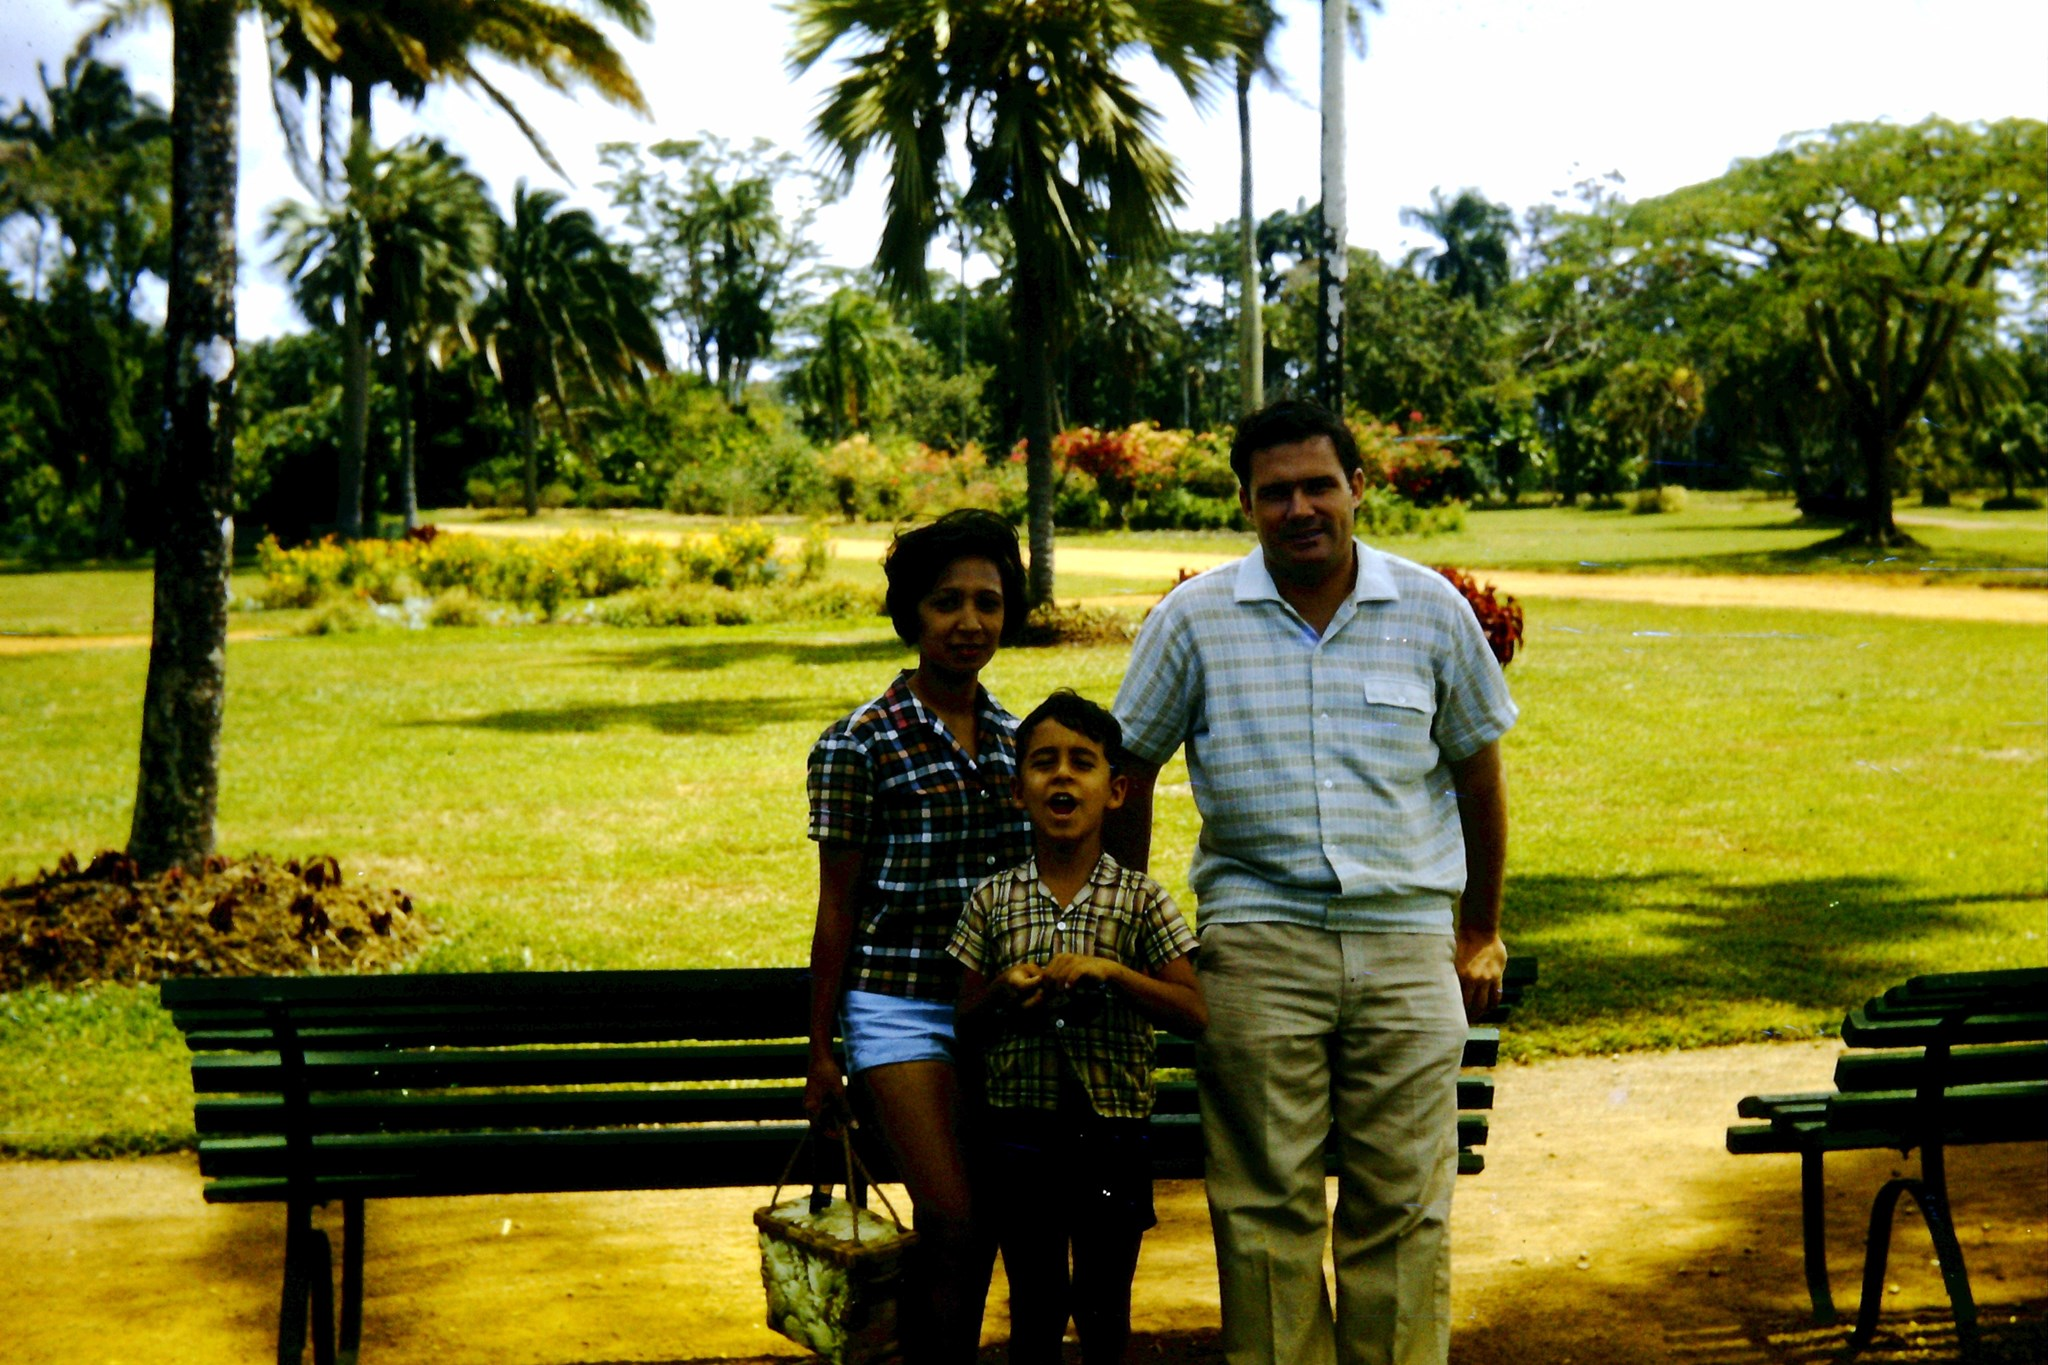 Jol, Margot & Trev, Guyana